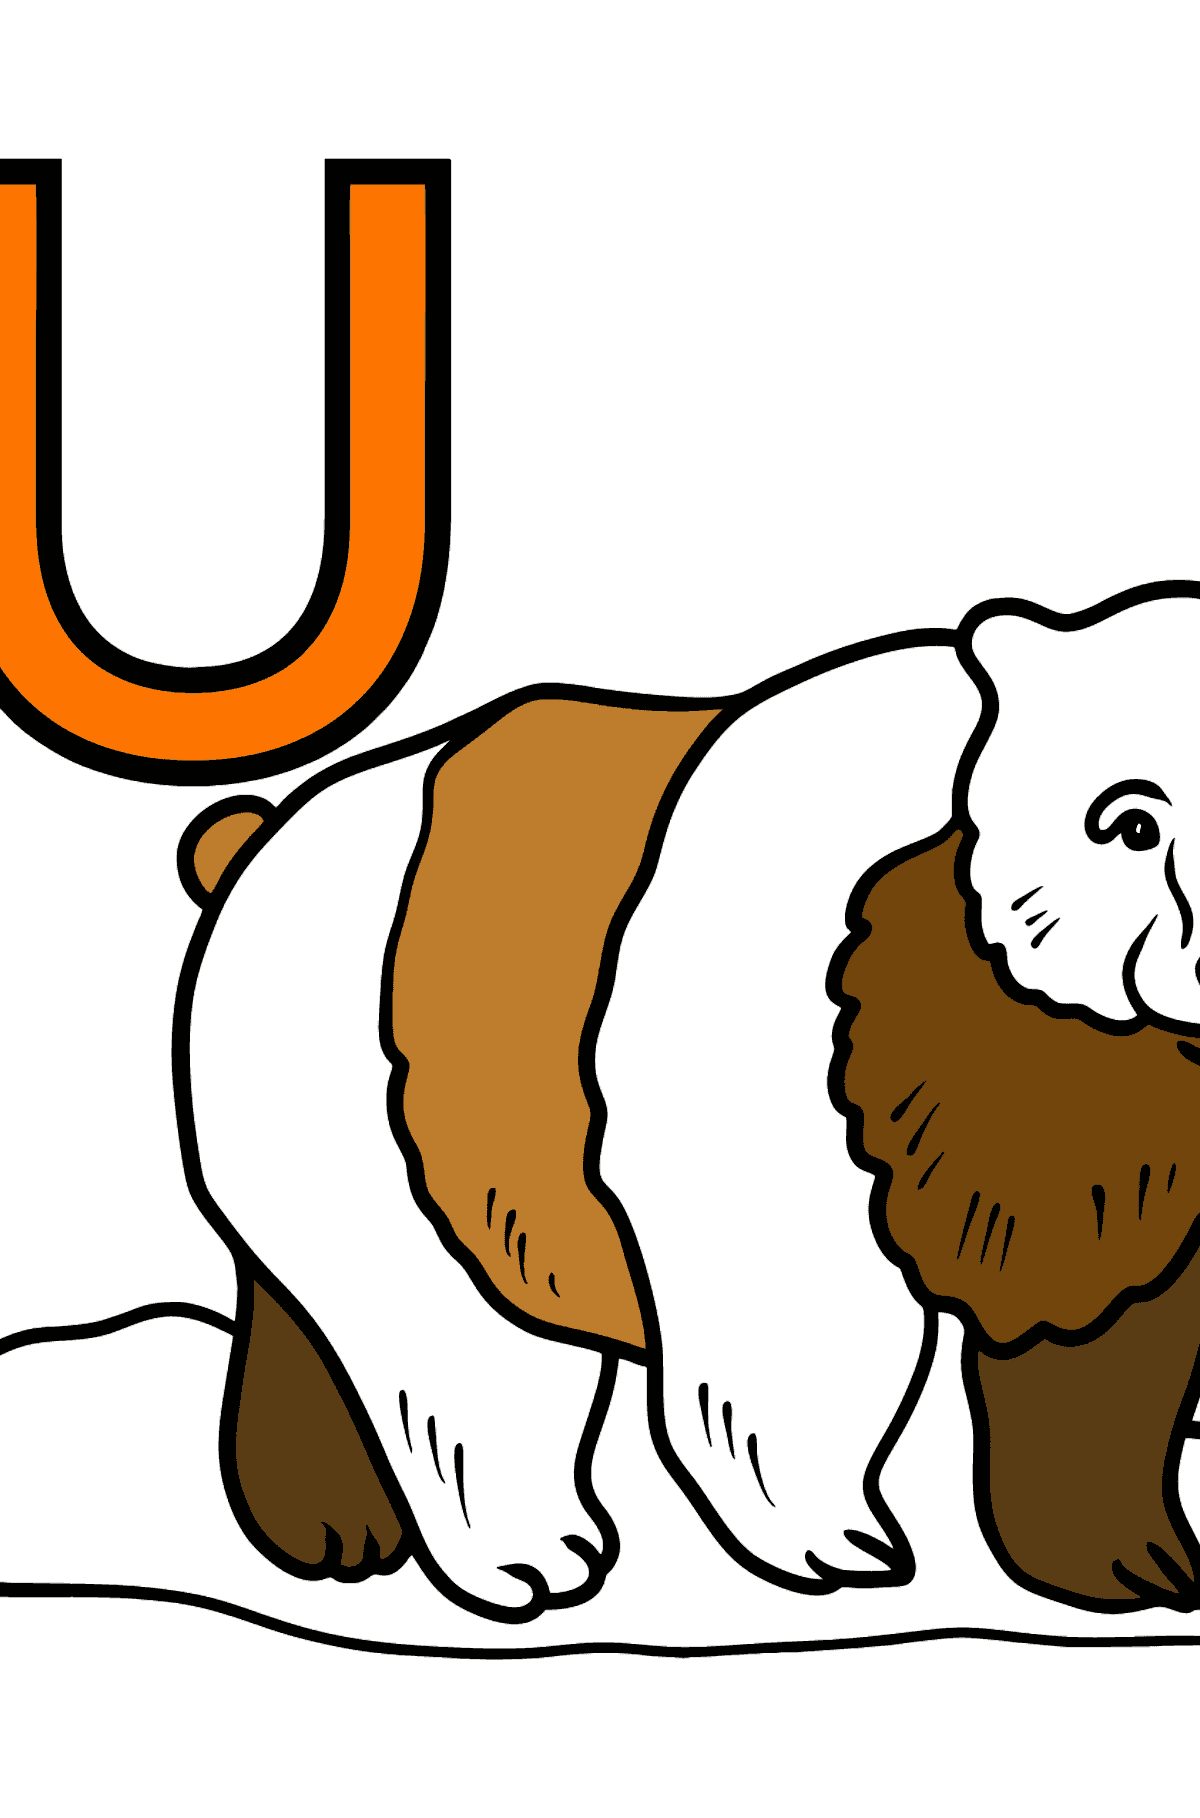 Portuguese Letter U coloring pages - URSO - Coloring Pages for Kids